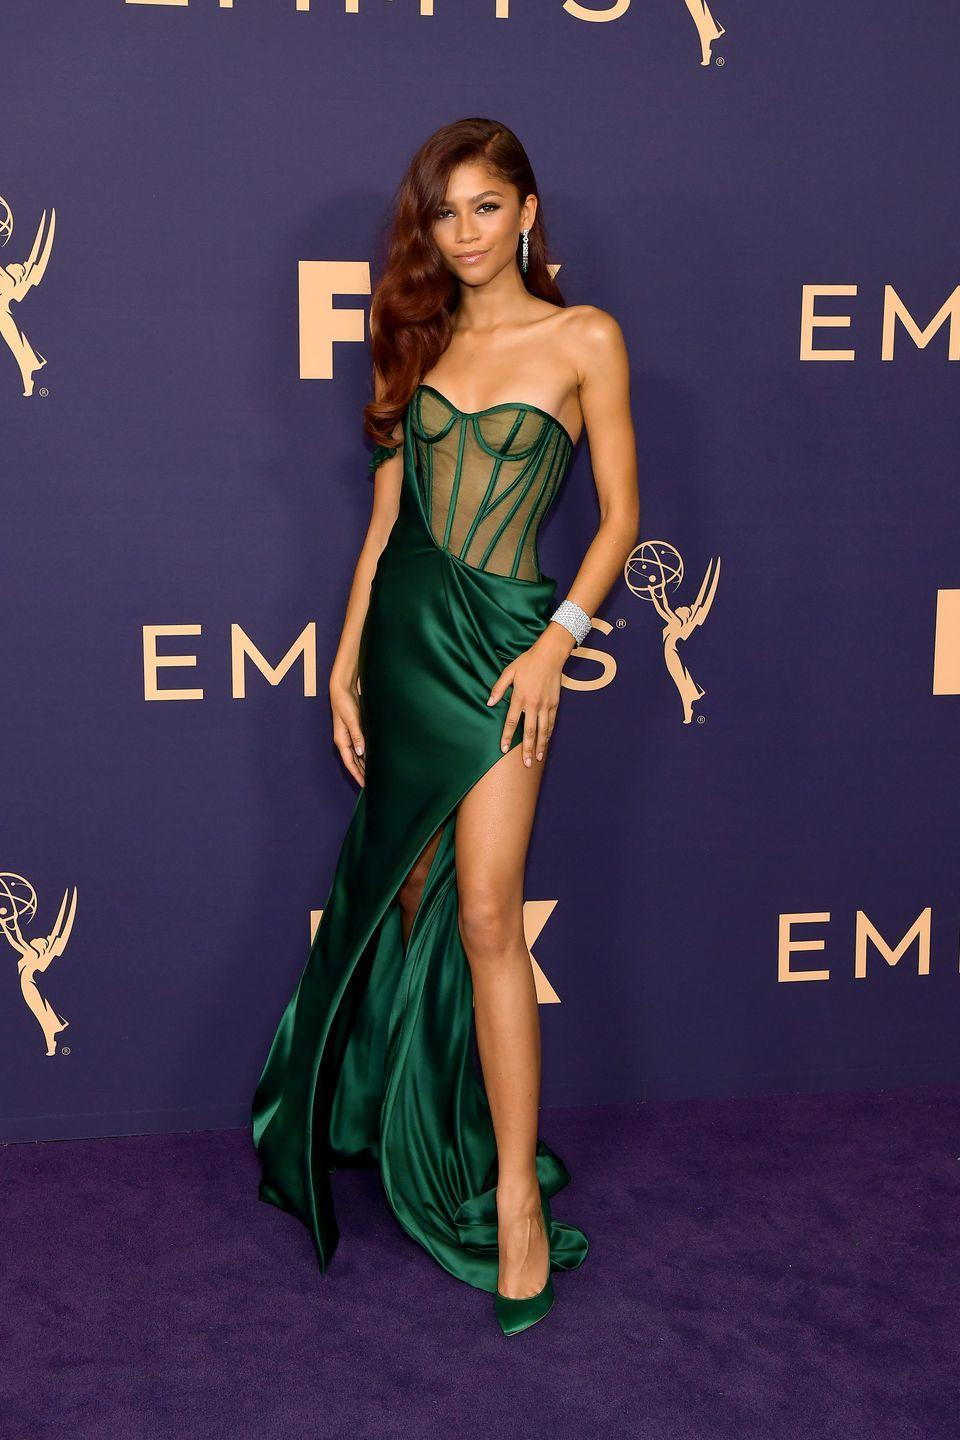 <p>Zendaya is all superstar in a green corset gown custom made by Vera Wang, with one-shoulder detail and an ultra-high slit. The actress' red hair is giving us major Poison Ivy vibes.</p>